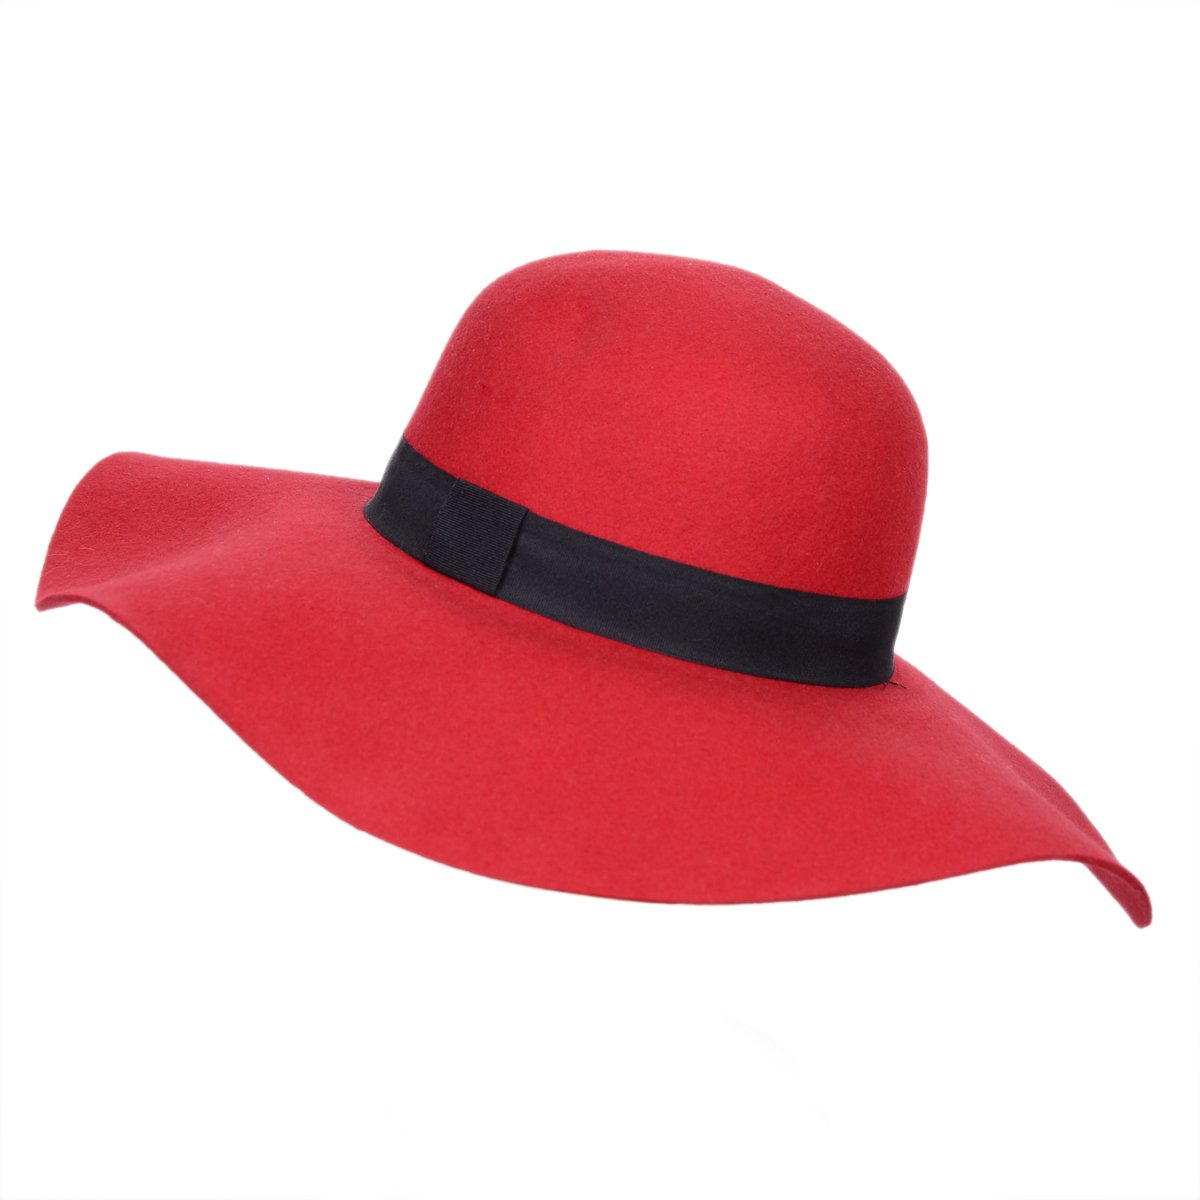 Verashome Wool Floppy Hat Felt Fedora with Wide Brim Women's Vintage Bowler for Ladies' Any Outfits